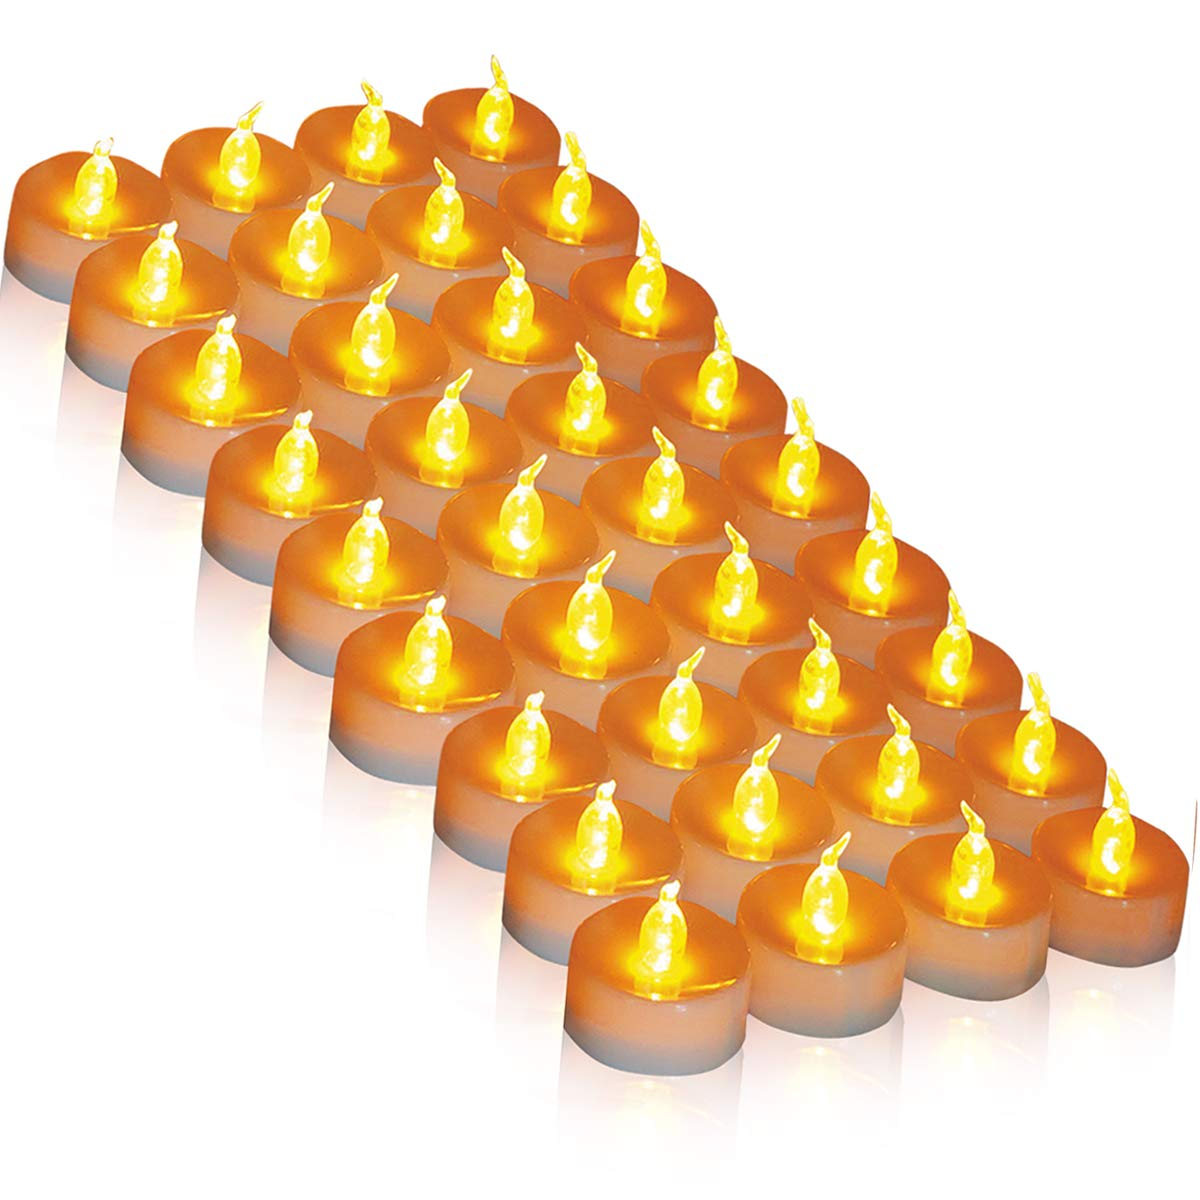 36 Pack Tea Lights LED Tea Light CandlesFlickering Flameless Candles Φ3.4 x H3.6 Battery Powered 100 Hours Warm Yellow 36 Pack